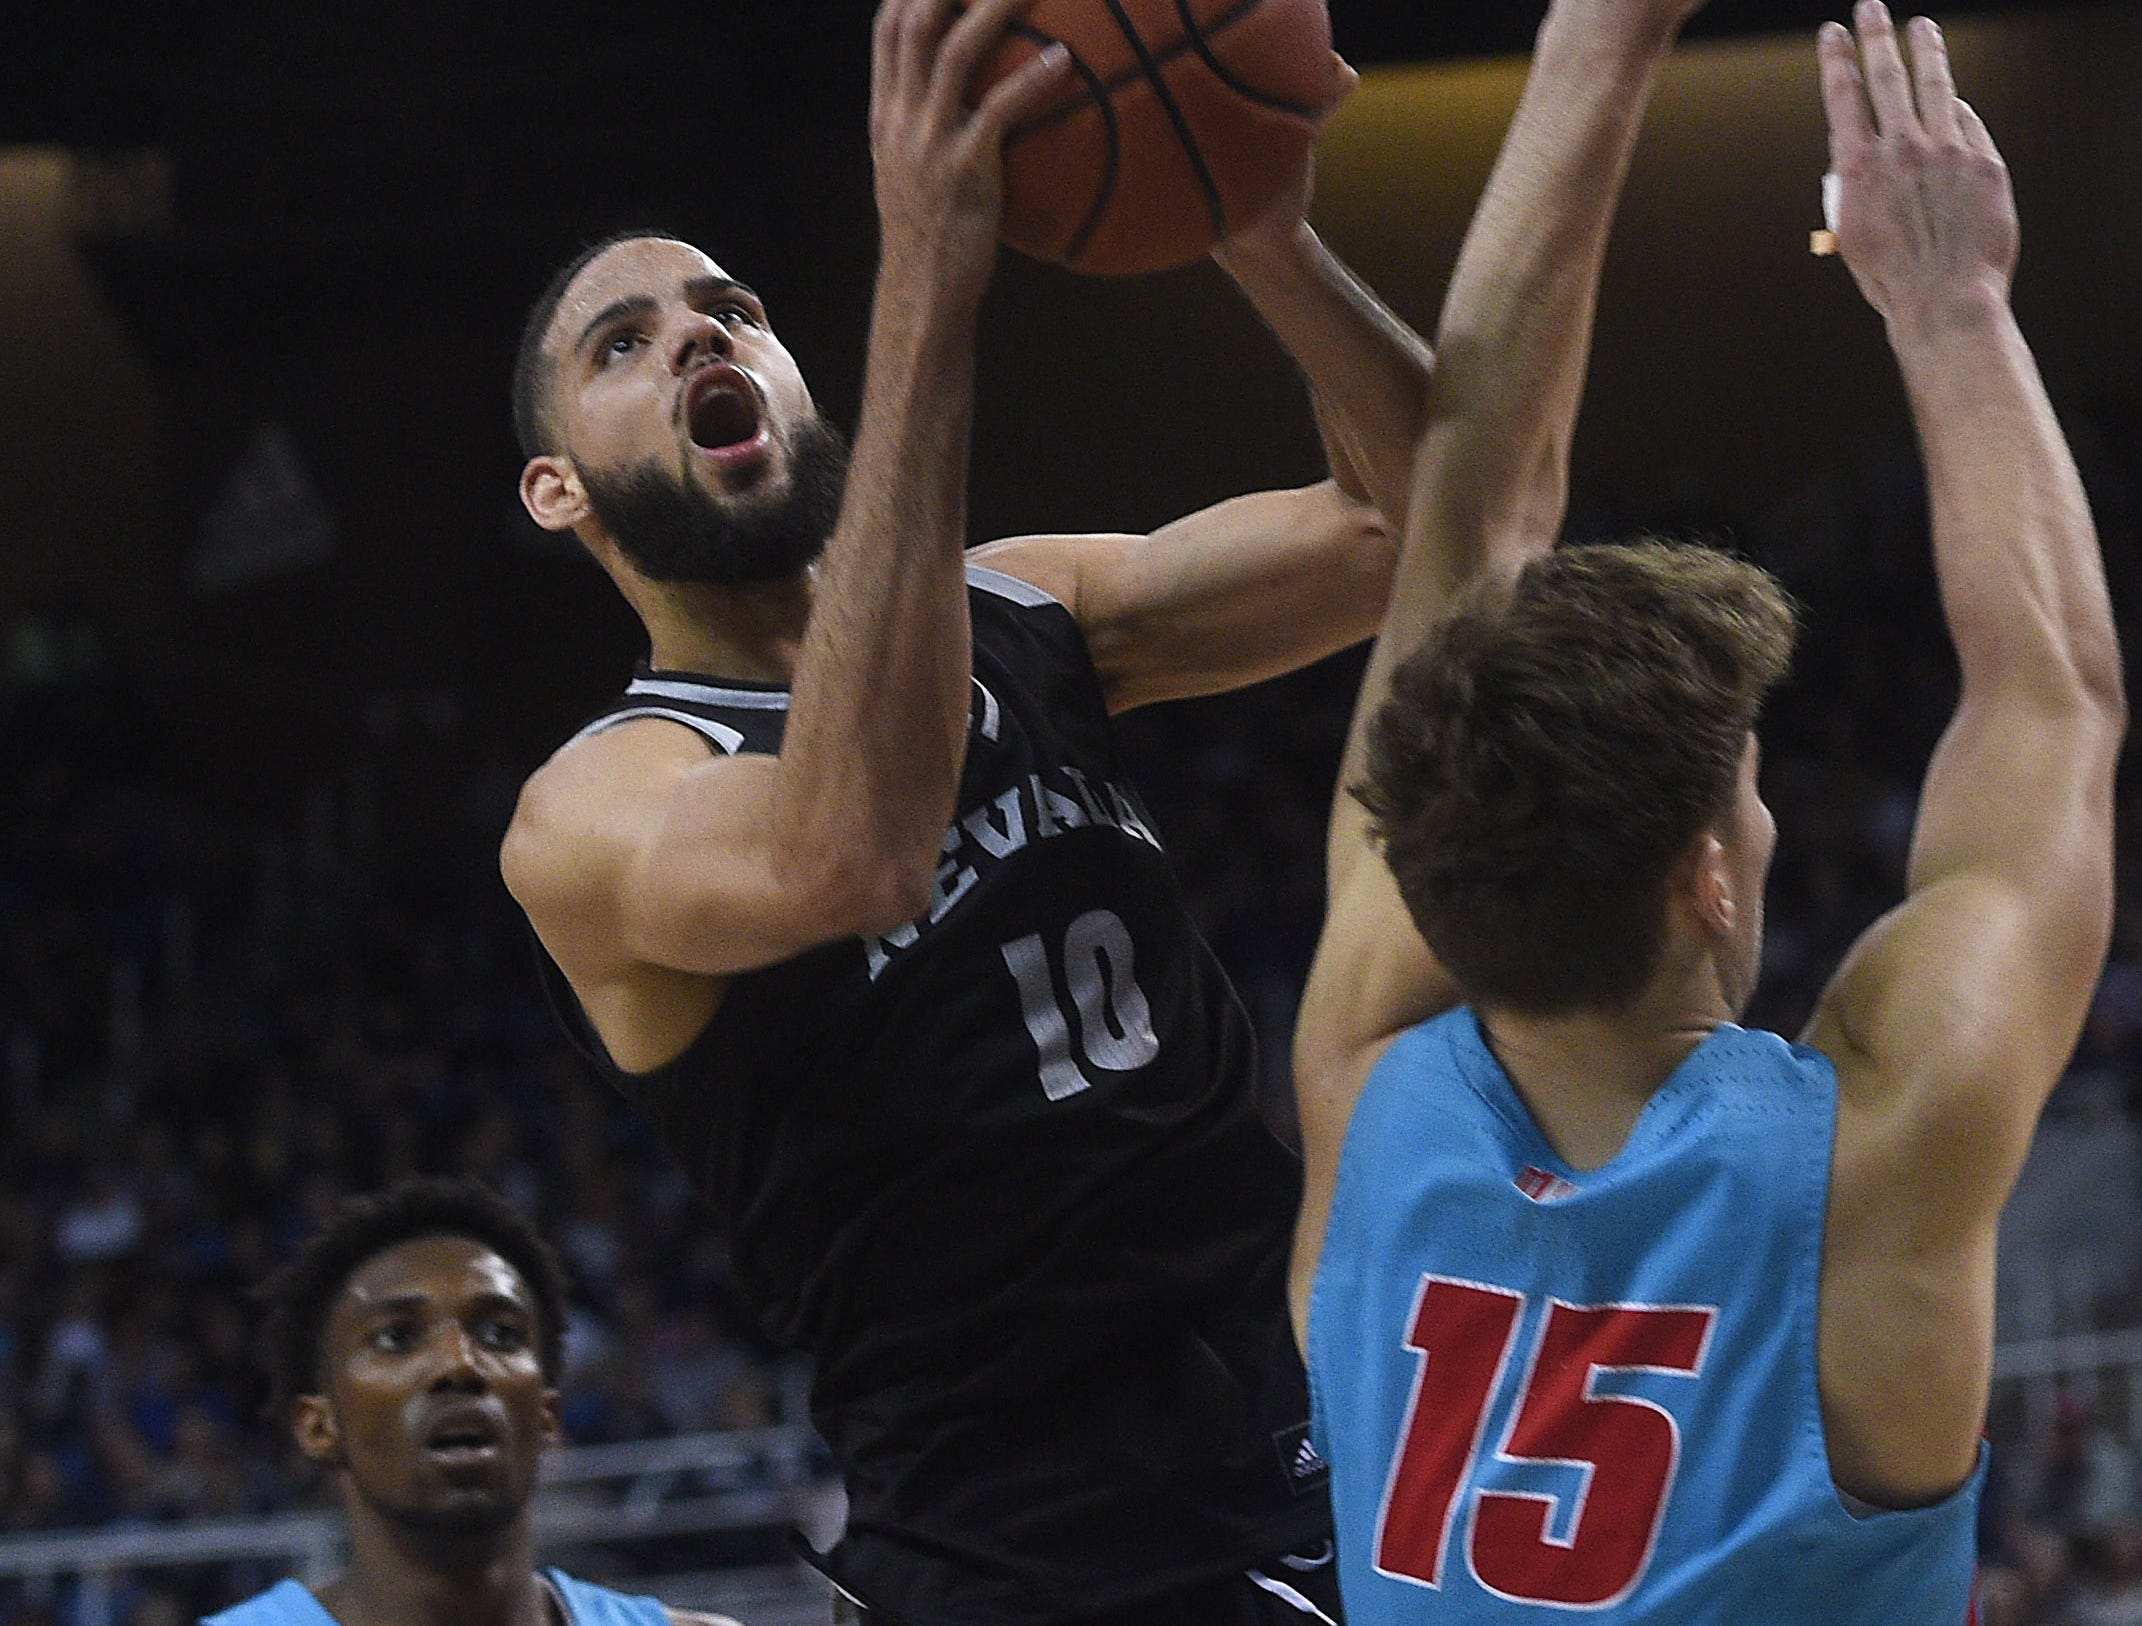 Nevada's Caleb Martin drives to the basket while taking on New Mexico at Lawlor Events Center in Reno on Feb. 9, 2019.